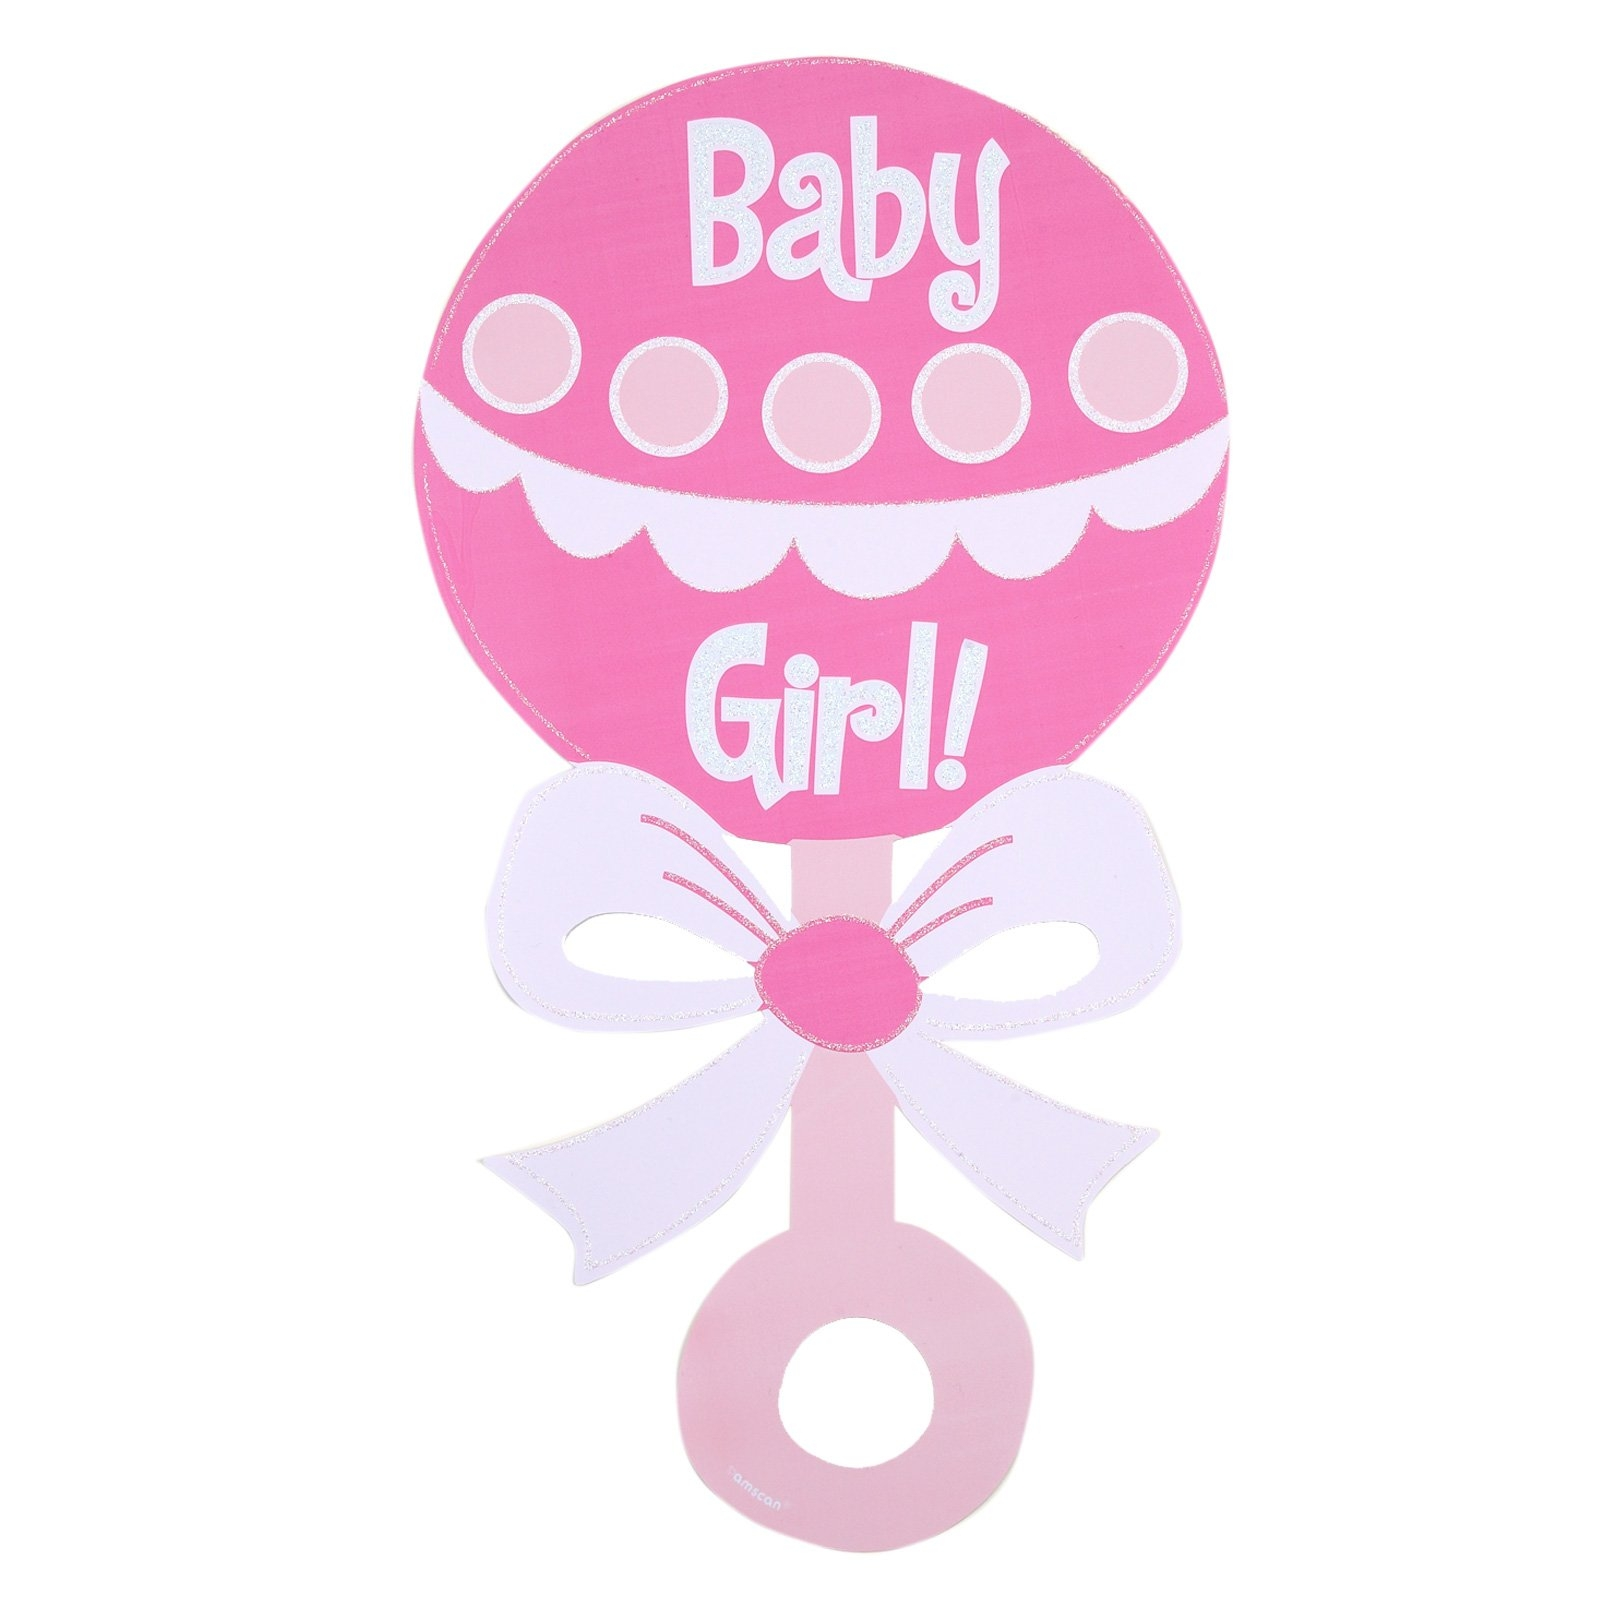 hight resolution of baby girl clip art 2947676 license personal use